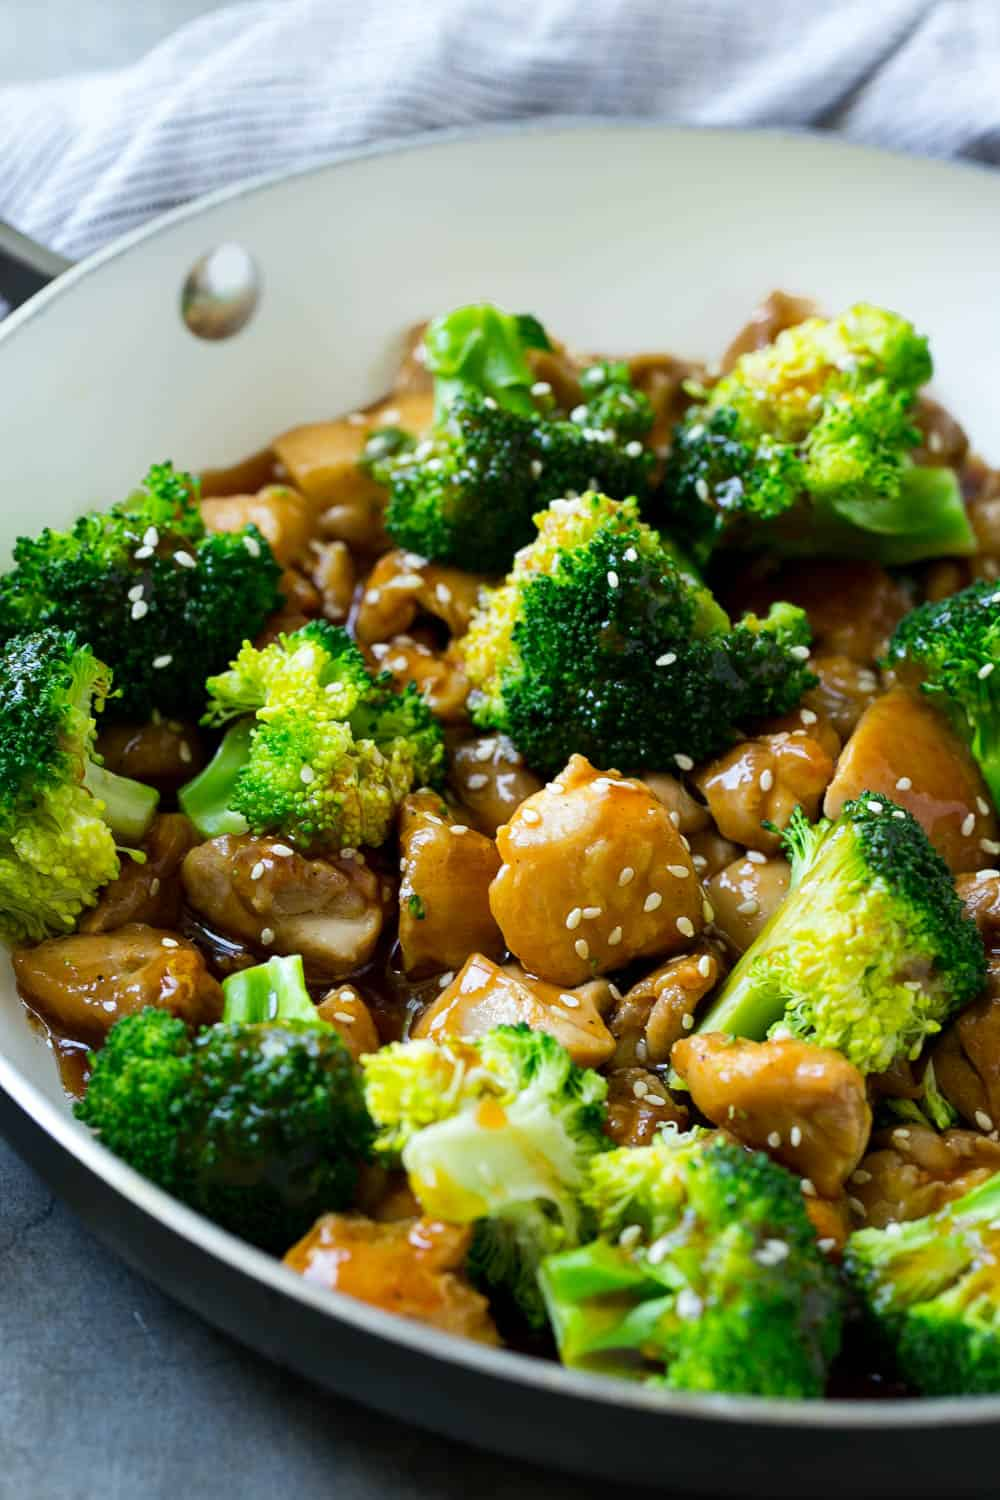 Chicken And Broccoli Stir-Fry  Healthy Fitness Meals-3306